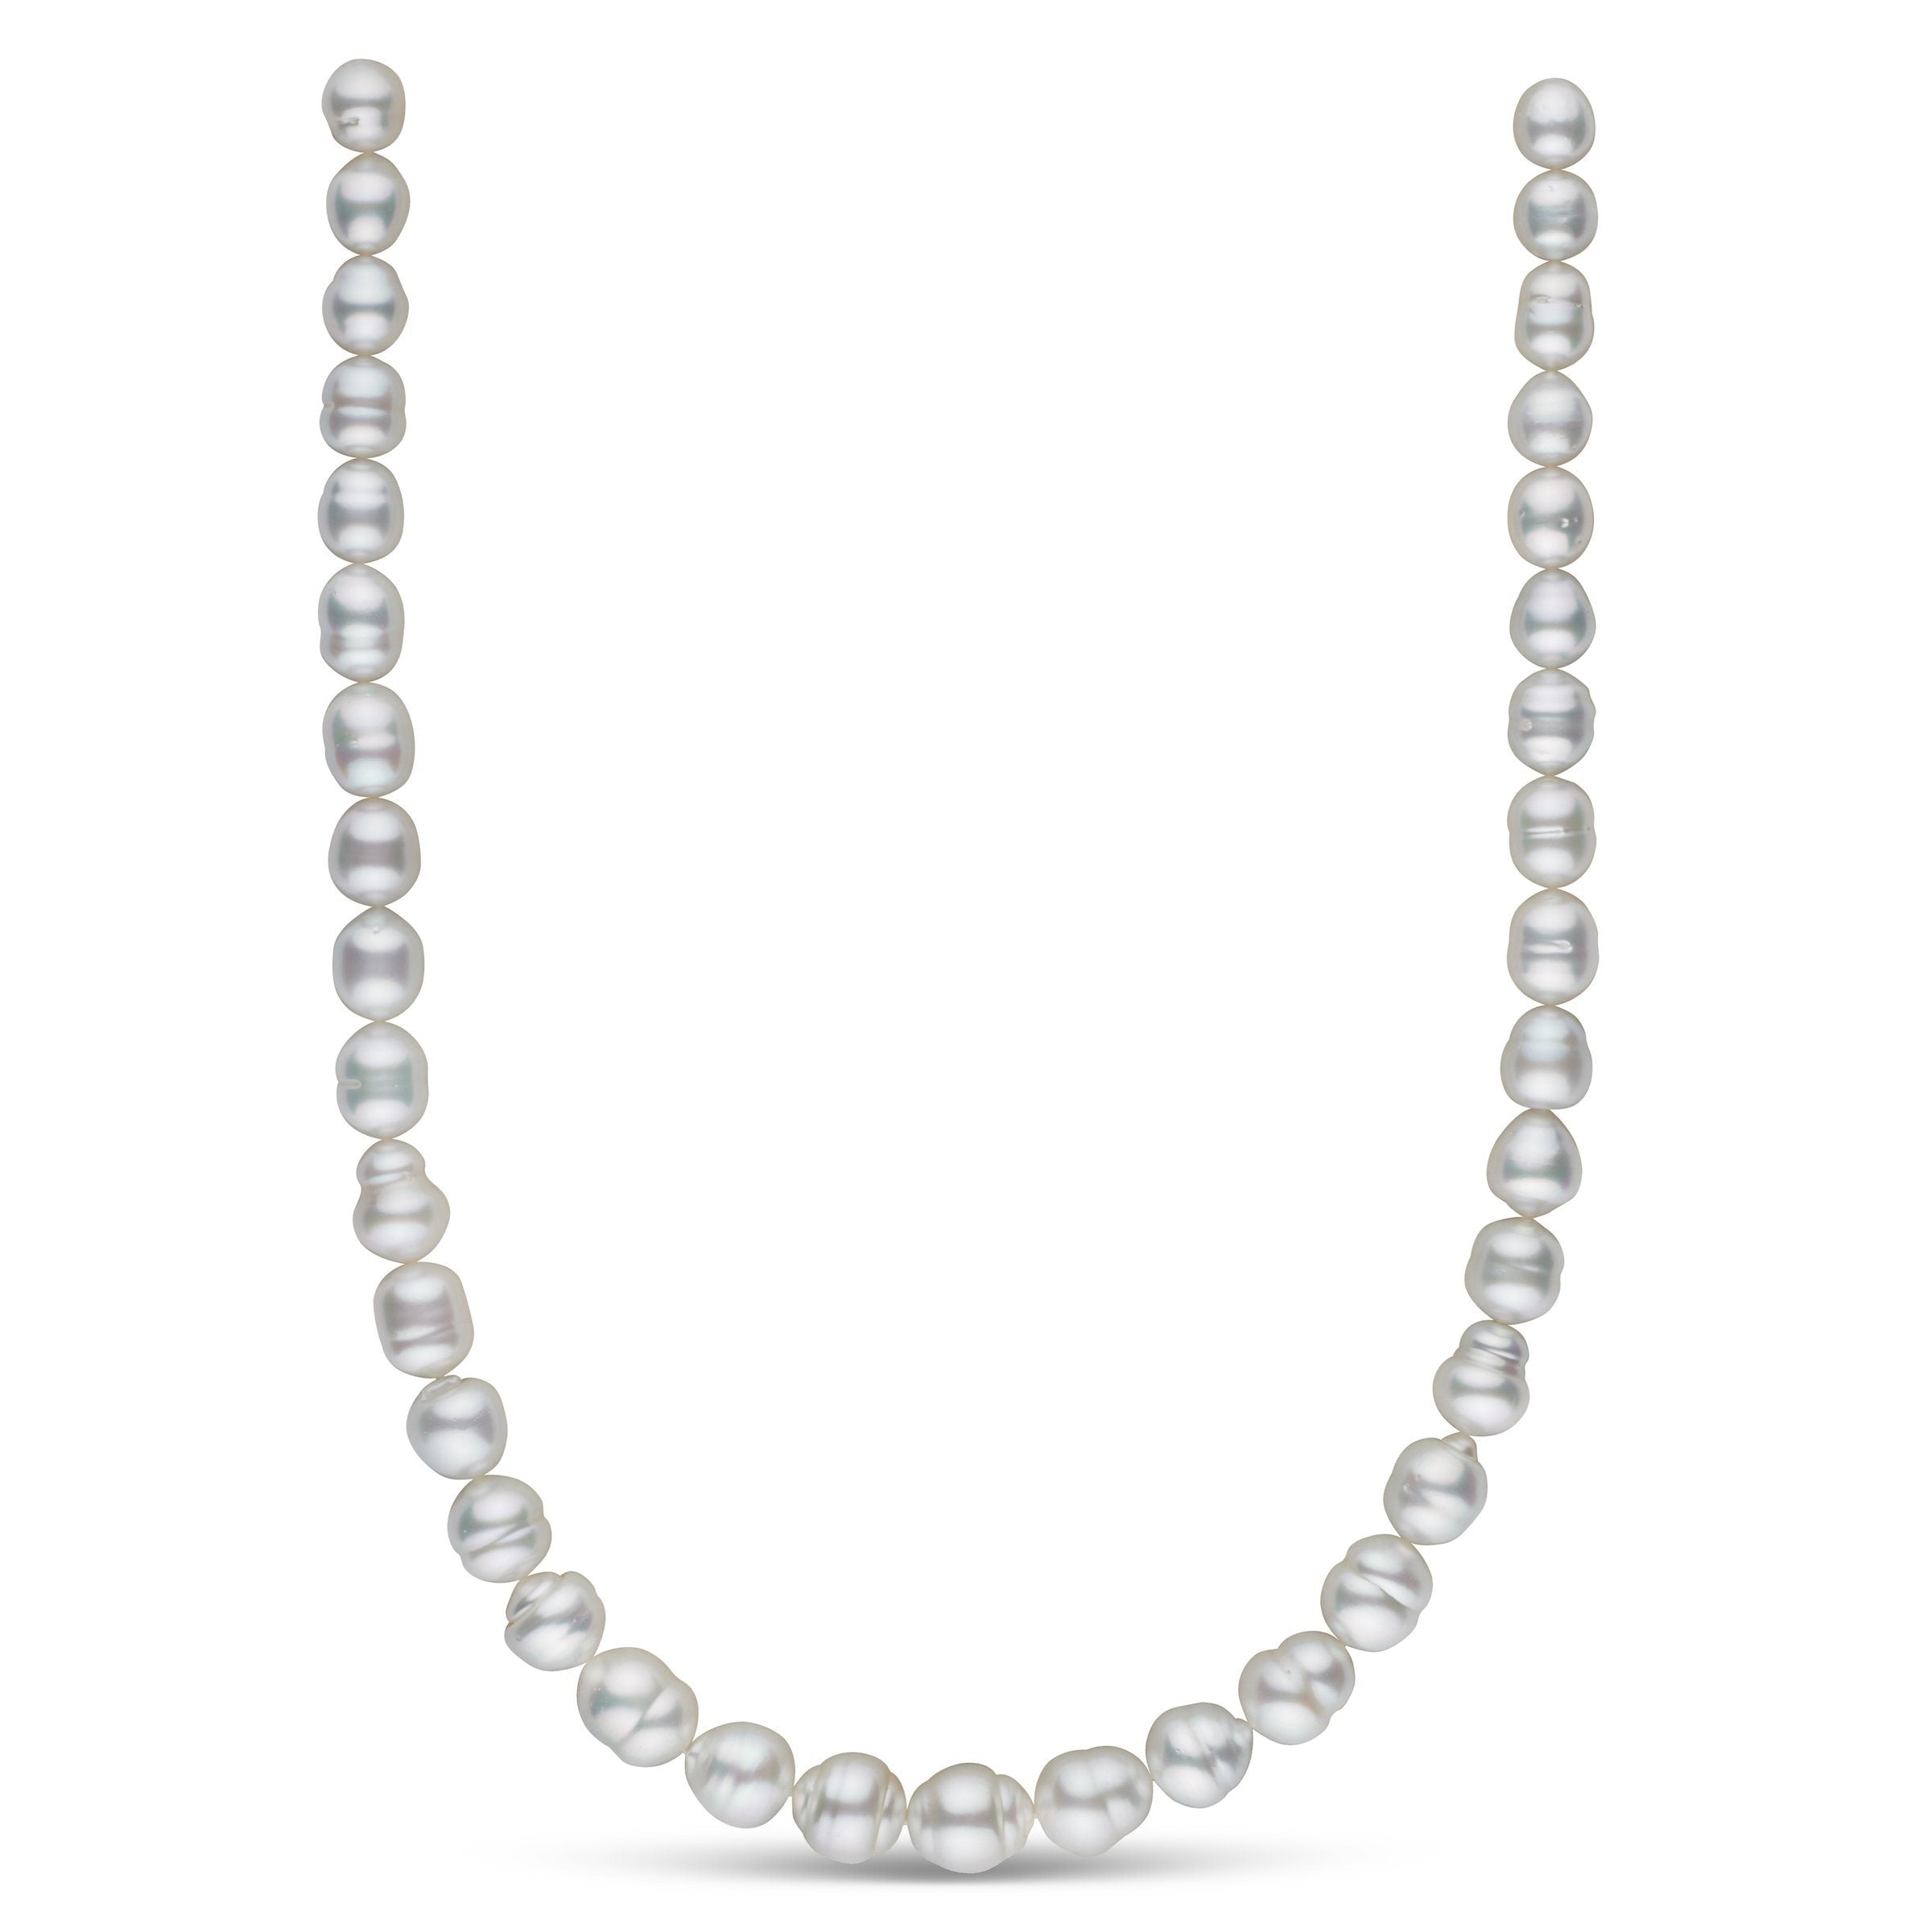 8.3-11.5 mm AA+/AAA White South Sea Baroque Necklace